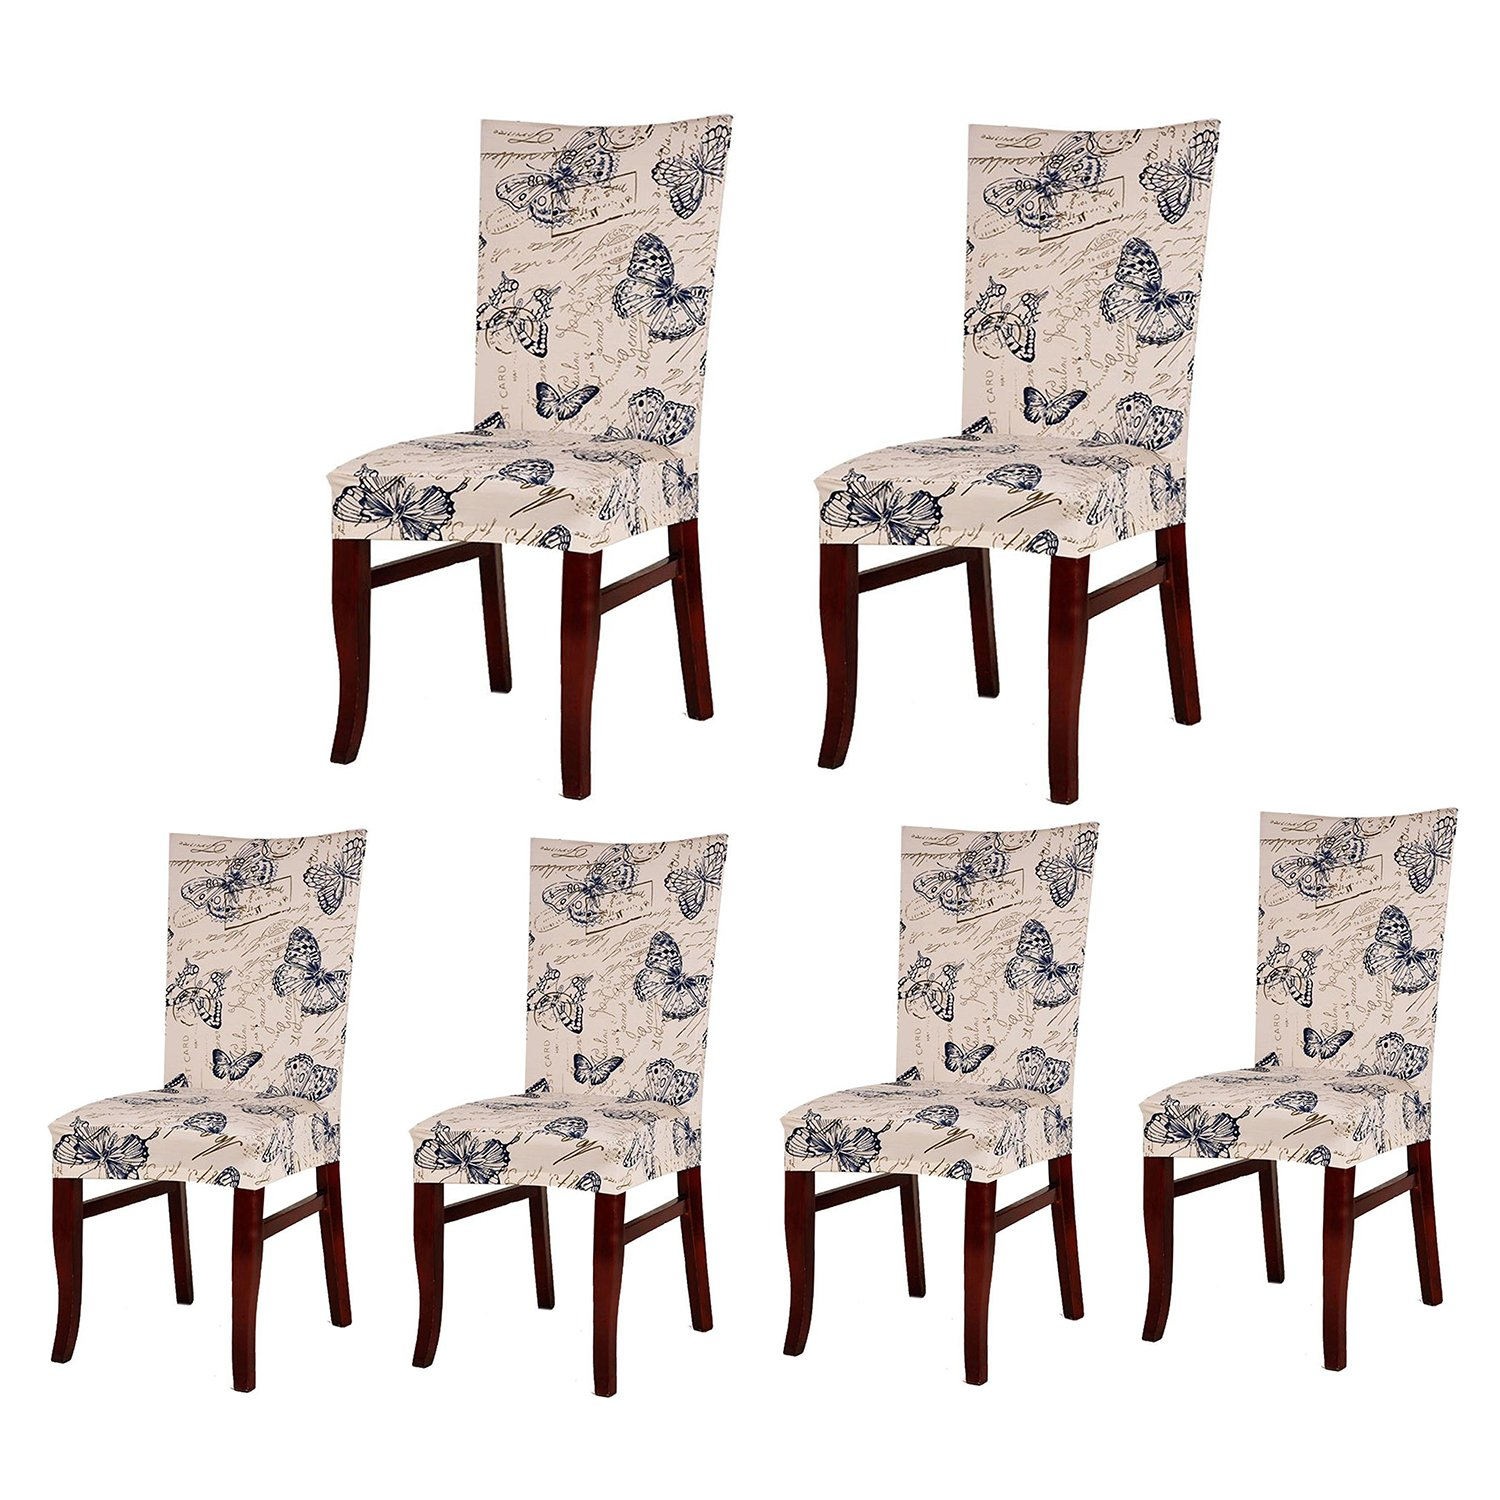 (6, Style 06) - Jiuhong Stretch Removable Washable Short Dining Chair Protector Cover Slipcover (6, Style 06) 6 スタイル06 B075XG22NZ